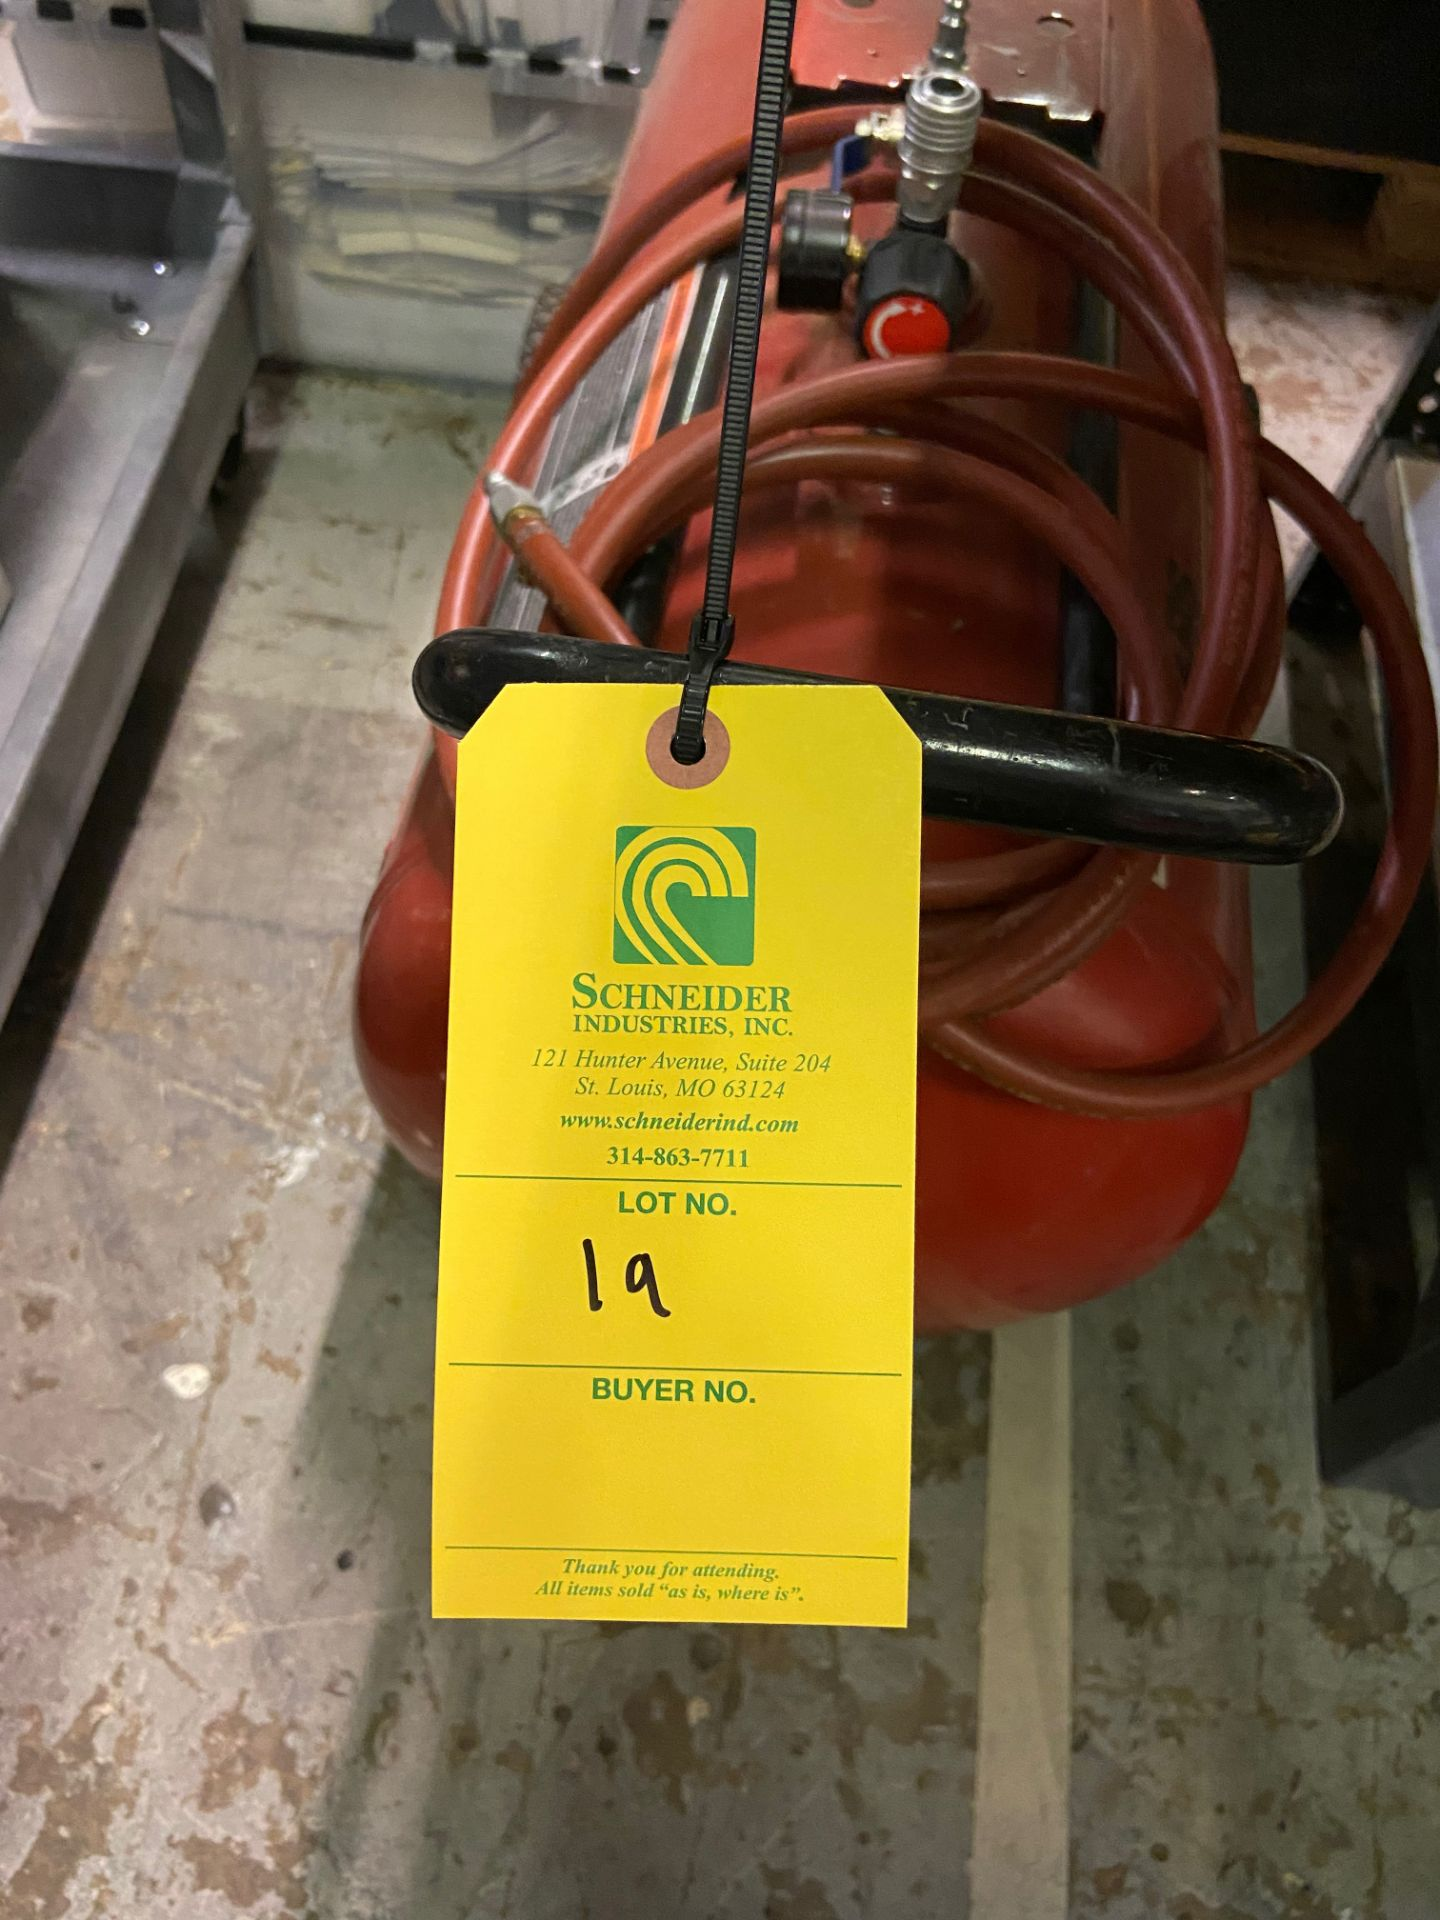 Sears/Craftsman Compressed Air Tank, Model# 919-16633, Serial# 9602261368, Loading/Removal Fee: $20 - Image 4 of 4